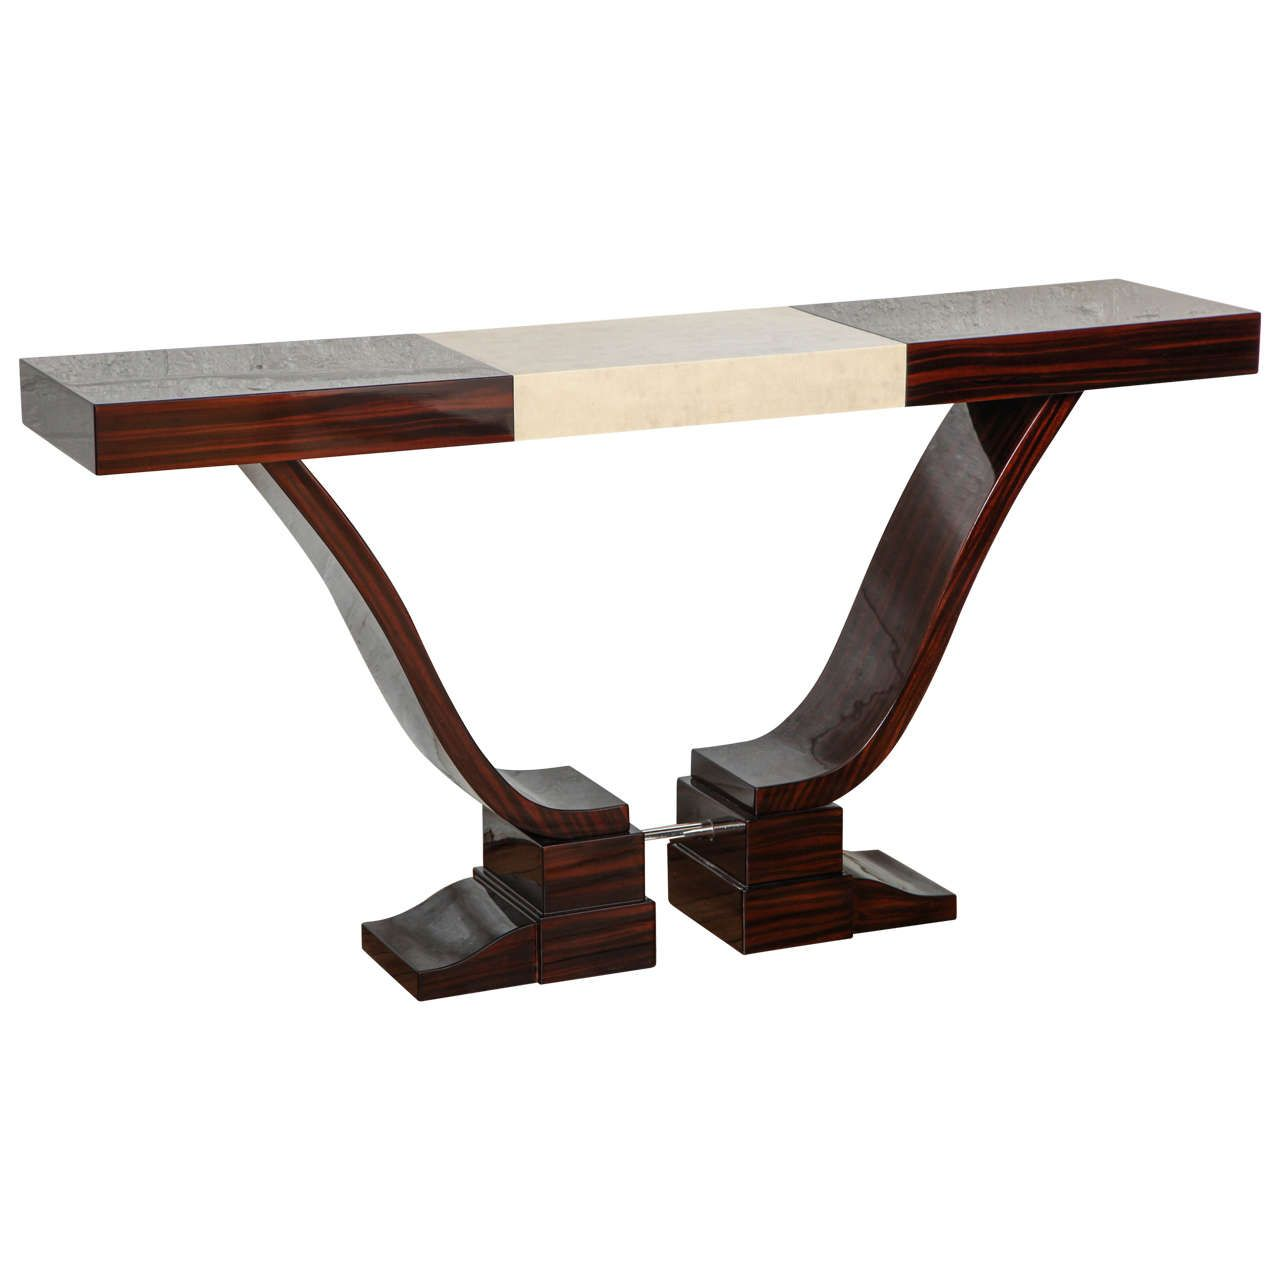 Elegant Art Deco Console Table From A Unique Collection Of